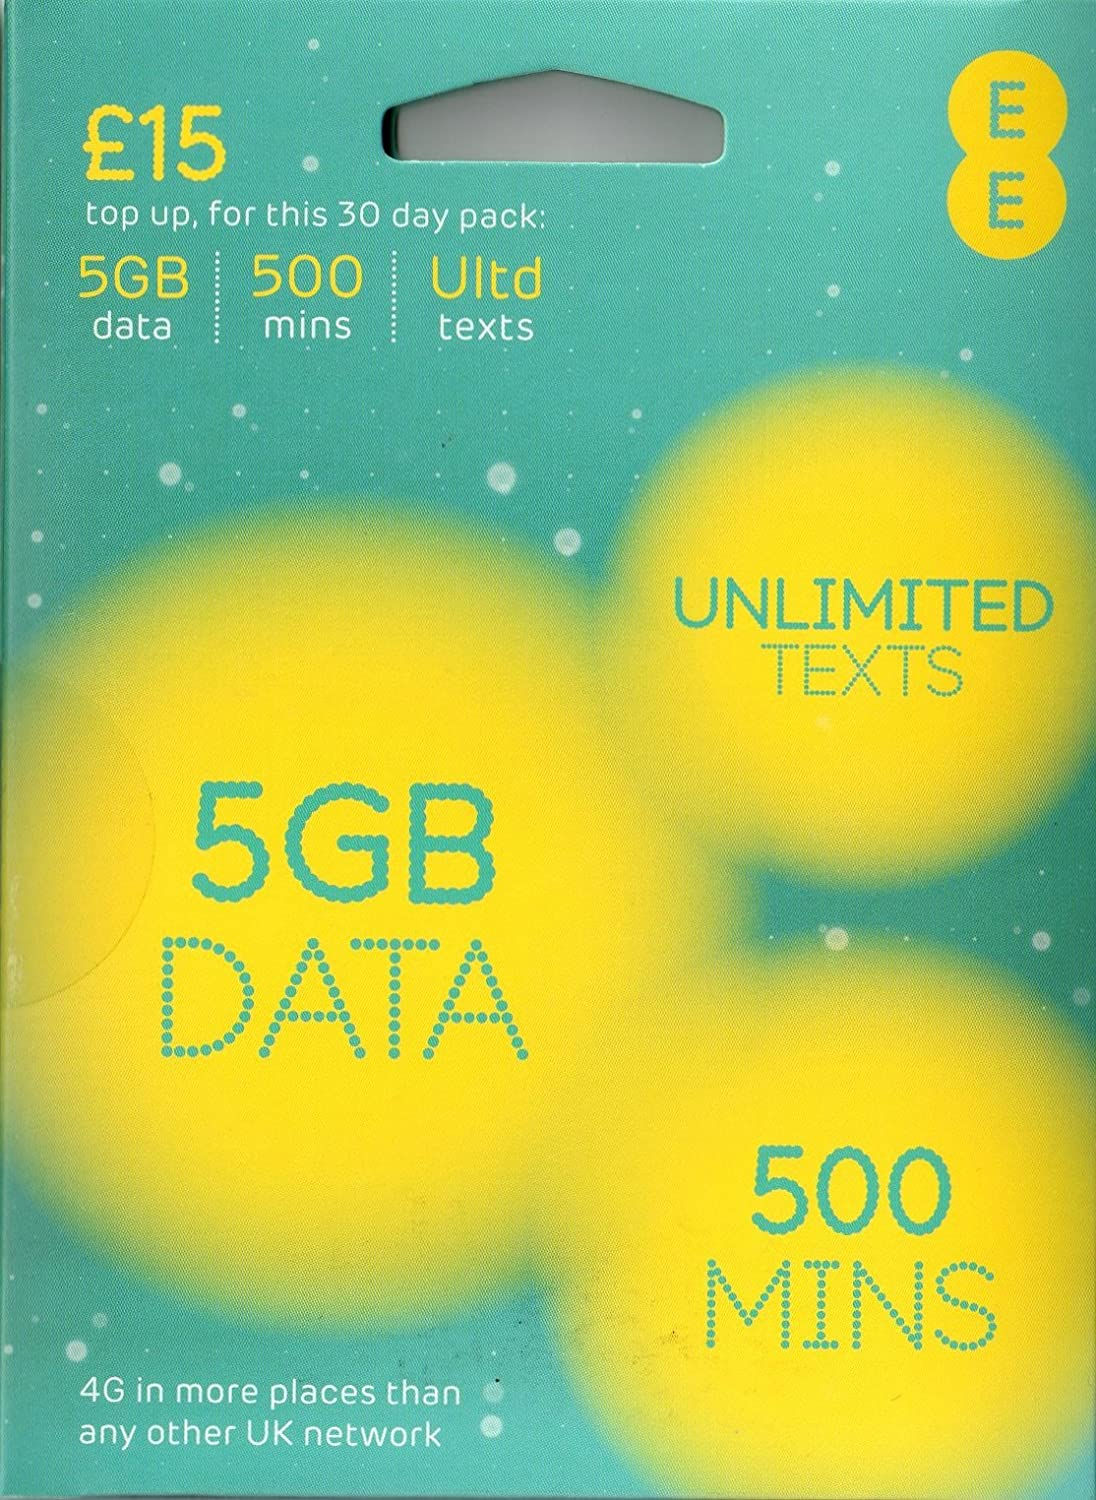 Ee 4g Payg Multi Sim Includes Nano Micro Standard Sim Unlimited Texts Up To 3000 Minutes 16gb Data For Mobile Phones Ipads Tablets Androids Dongles Other Wifi Device Just